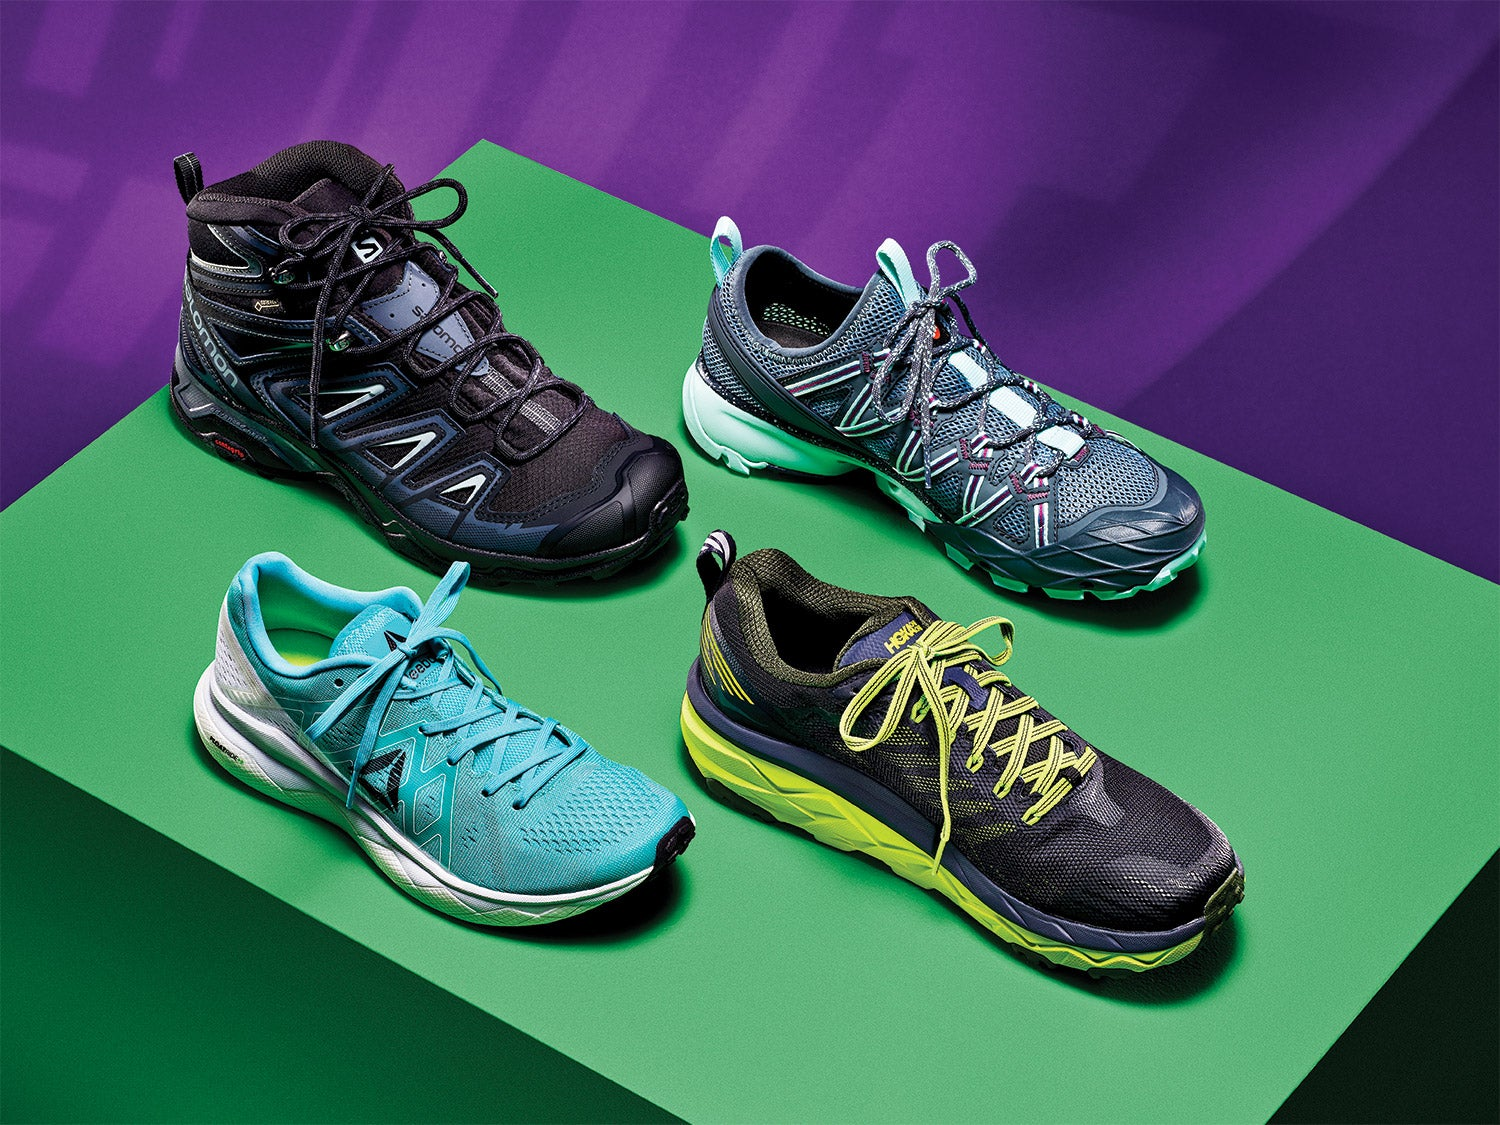 Shoes made for rocky trails, wet beaches, and other tough terrain